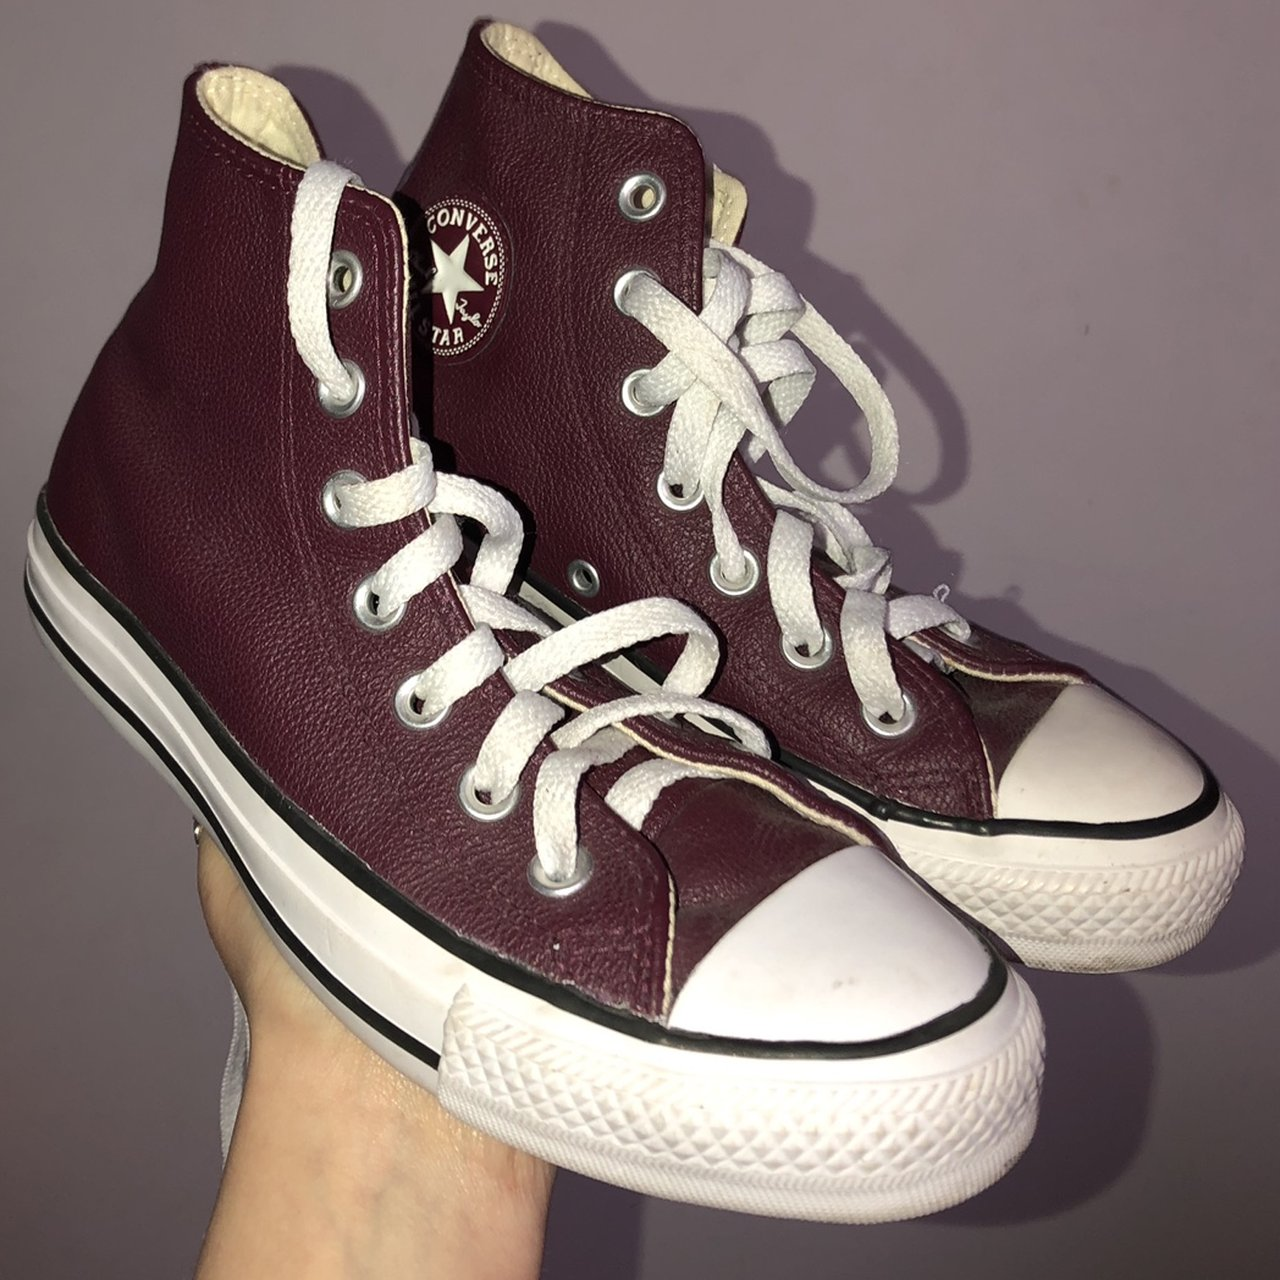 UK size 4 Burgundy, leather high top